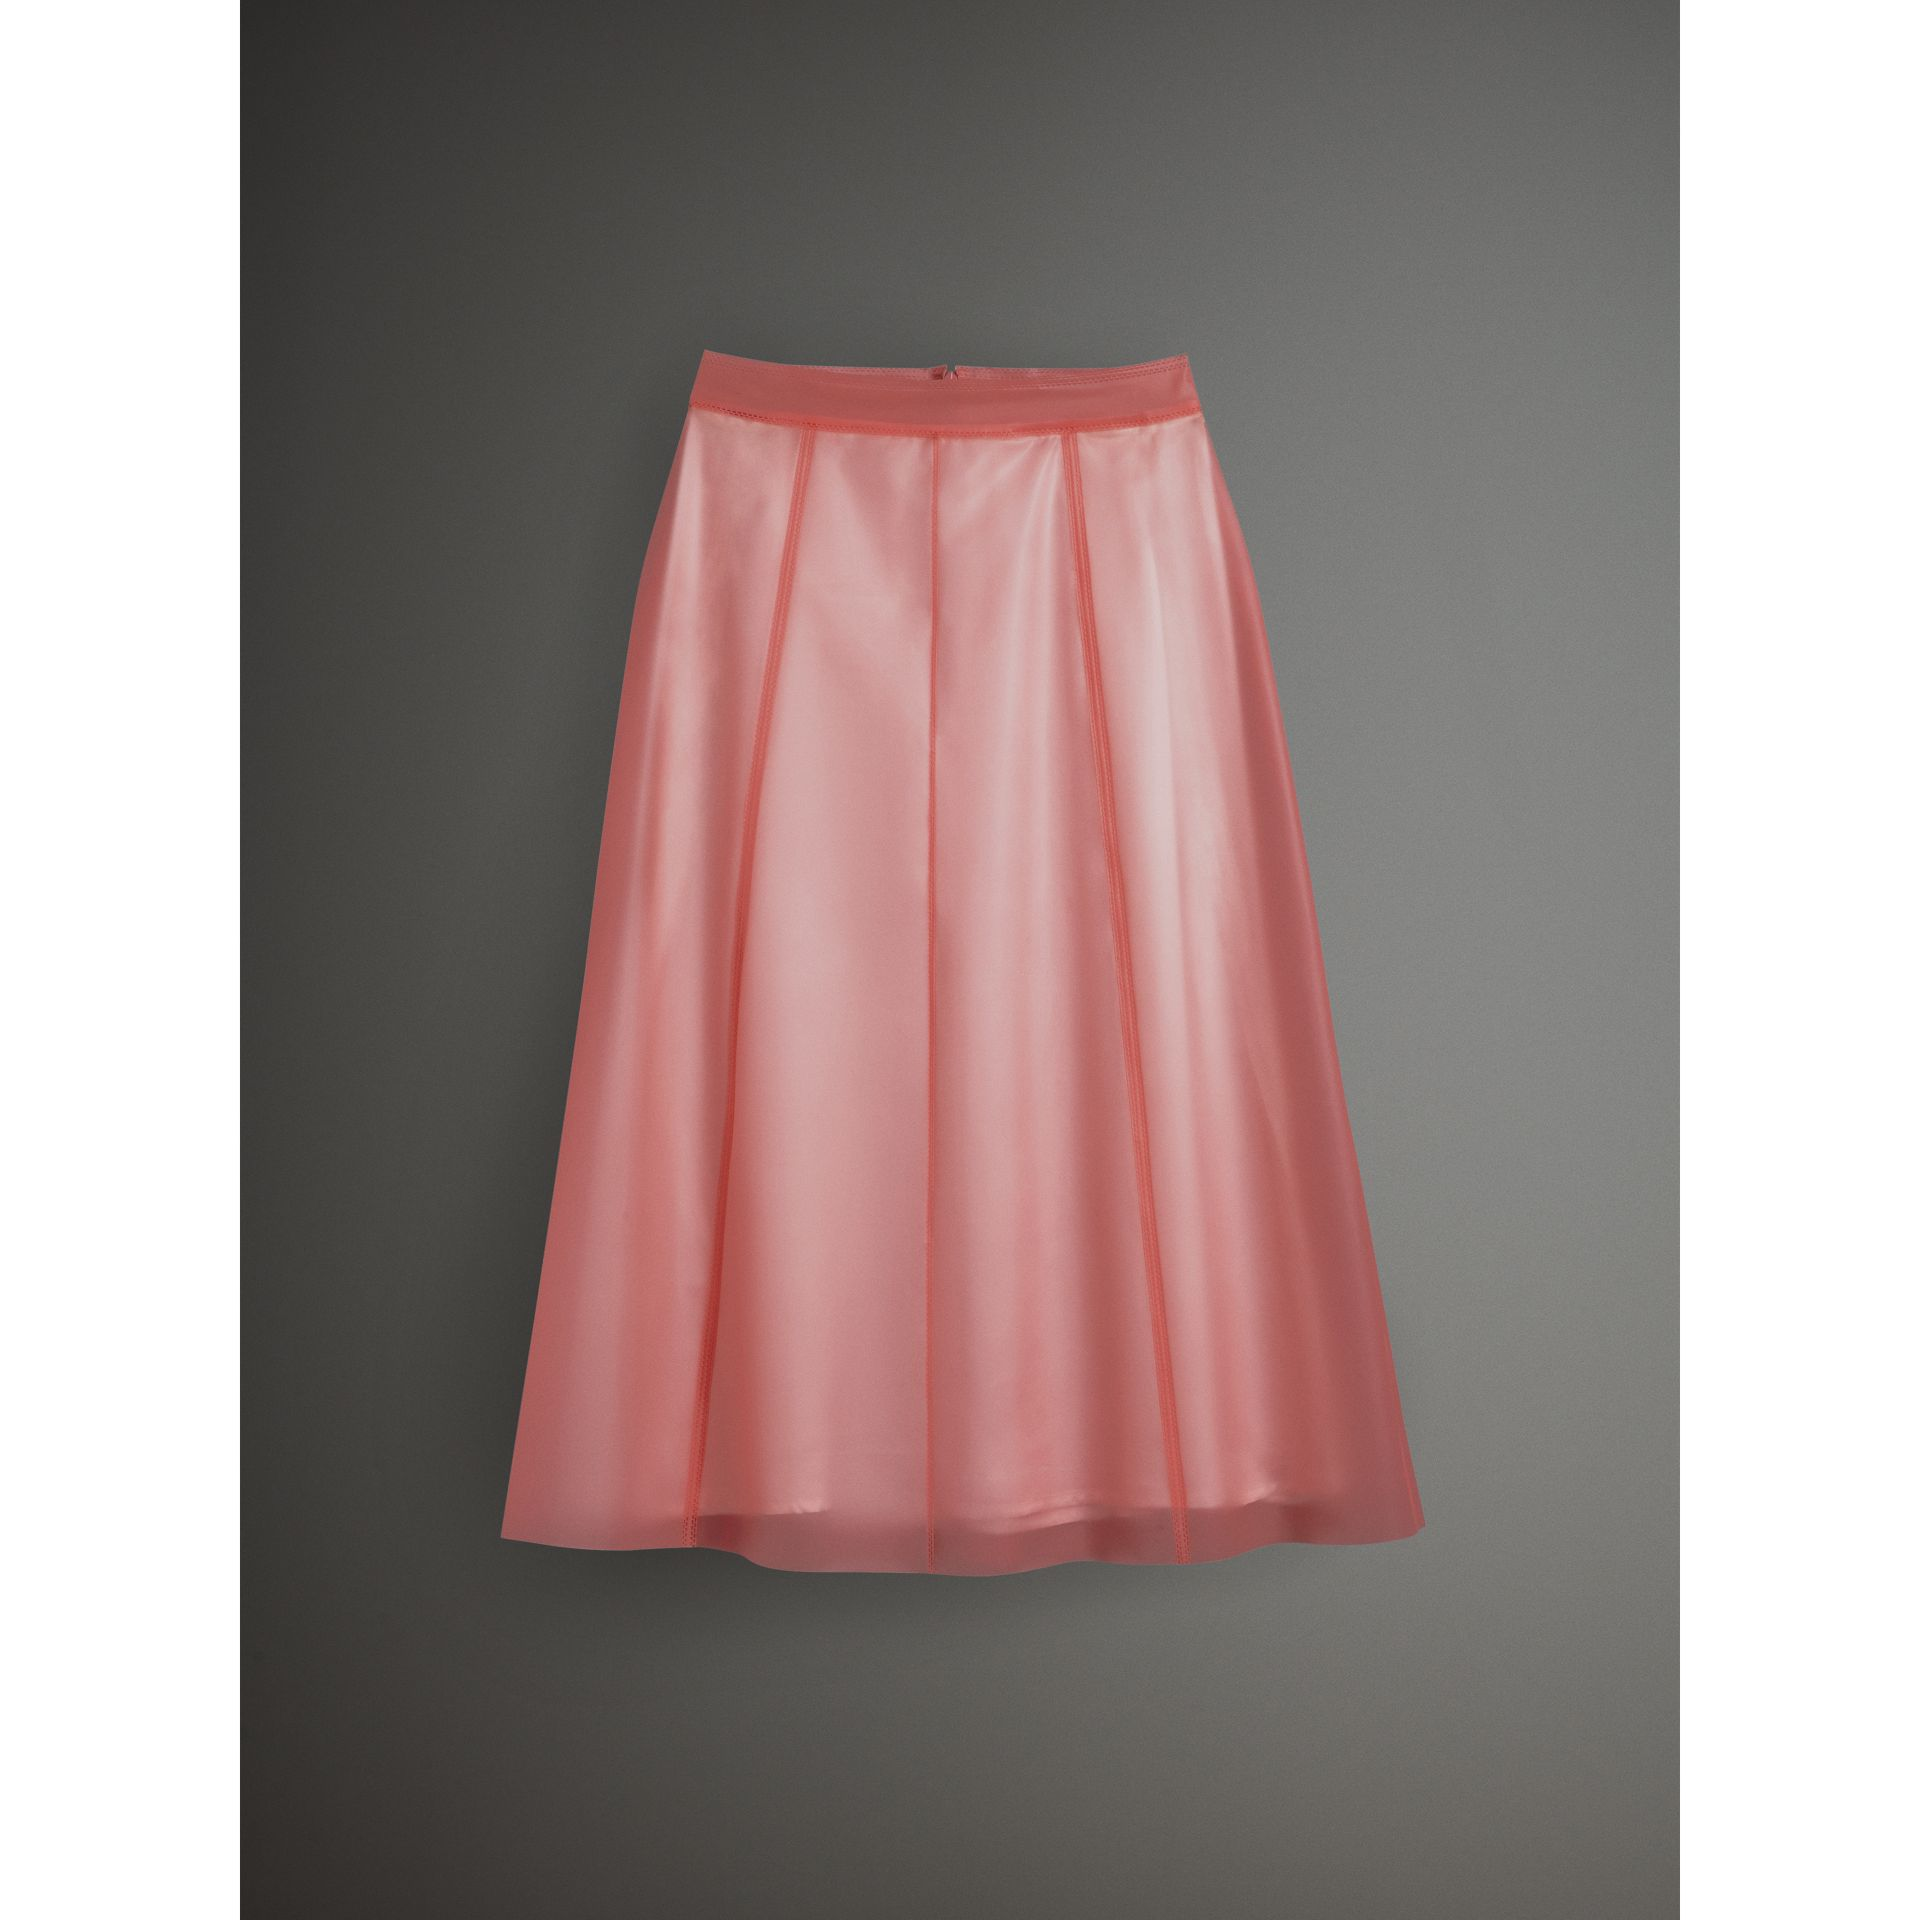 Silk-lined Plastic A-line Skirt in Rose Pink - Women | Burberry Singapore - gallery image 4